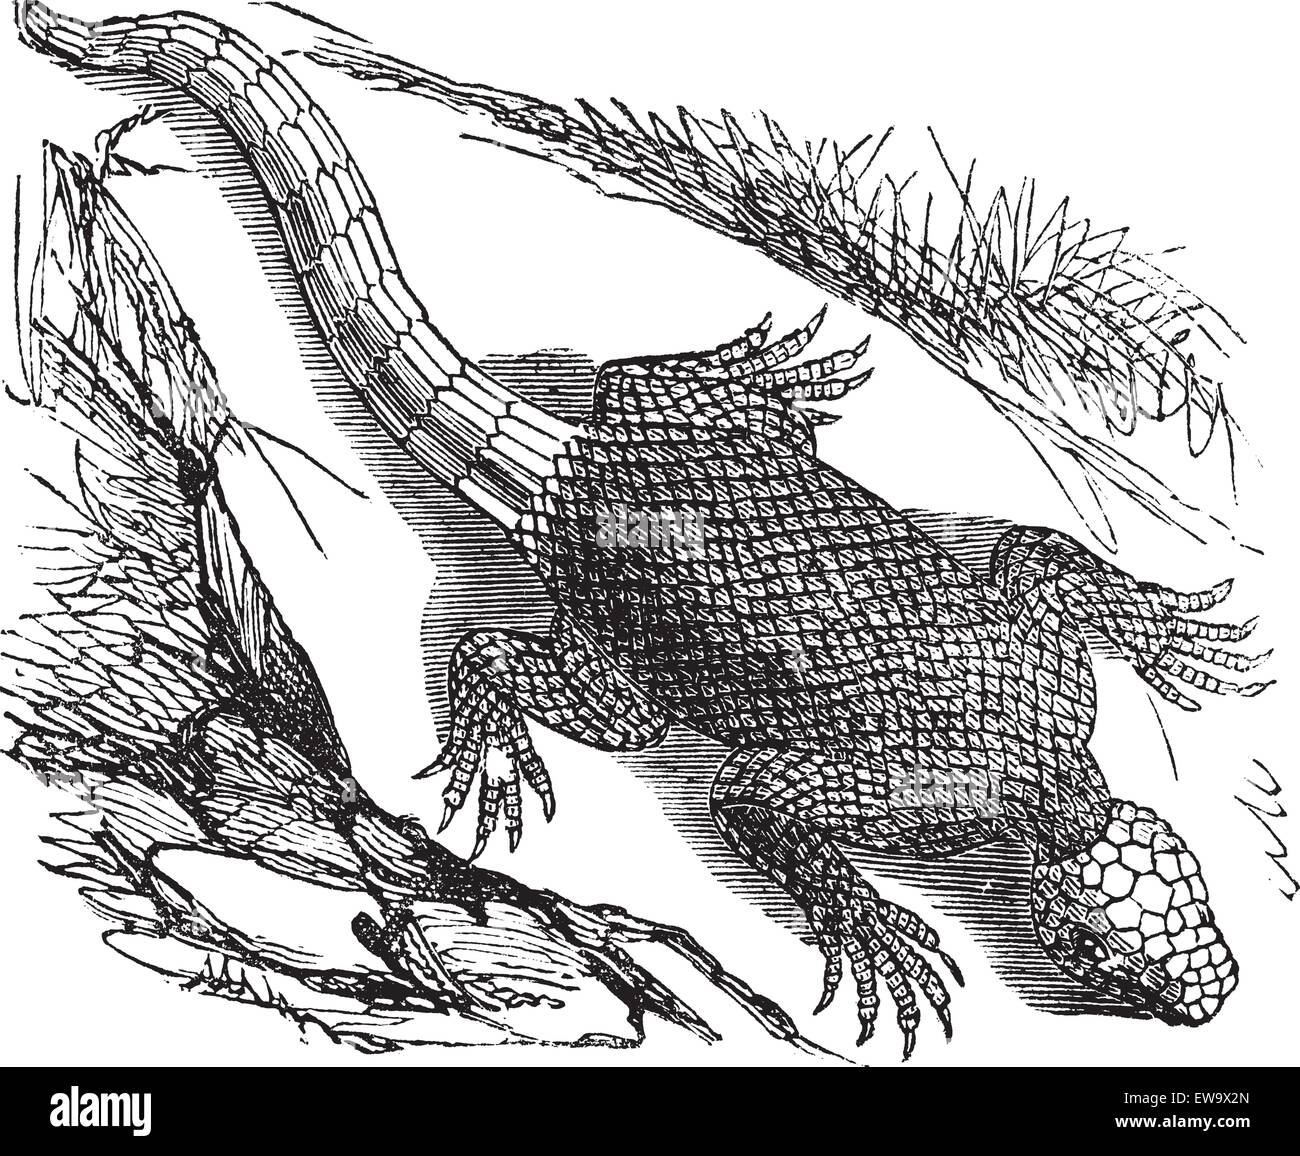 West african spinous lizard or Agama colonorum engraving or vintage illustration. From the reptilia agamidae family. - Stock Image